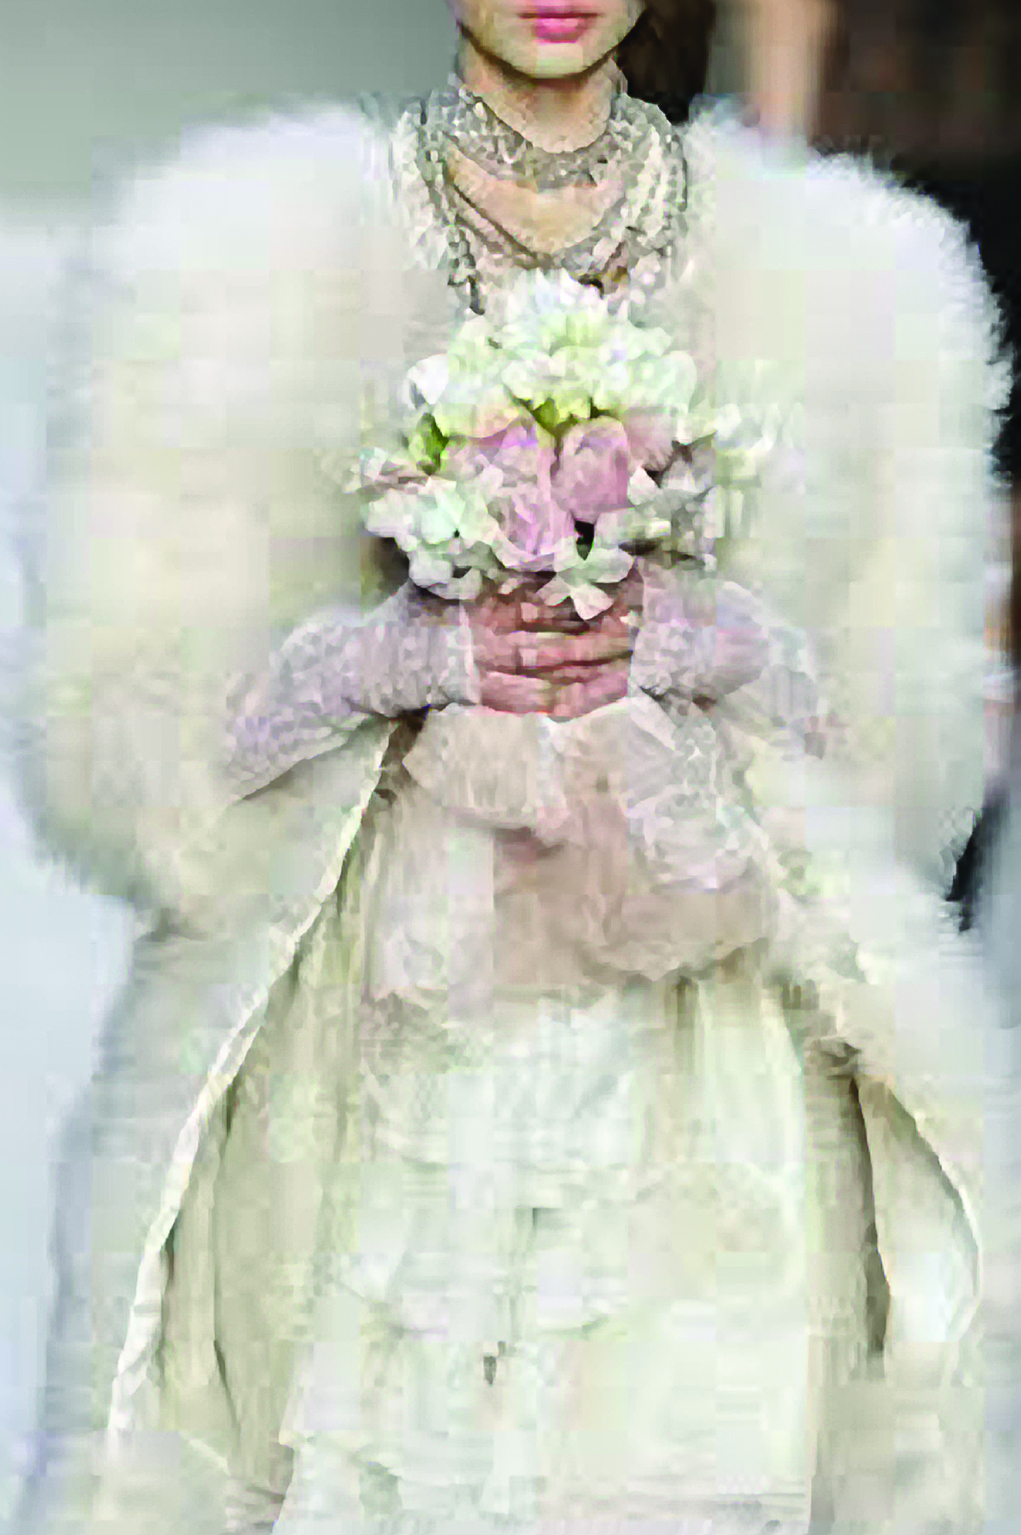 winter bride imagesyp2qif7x